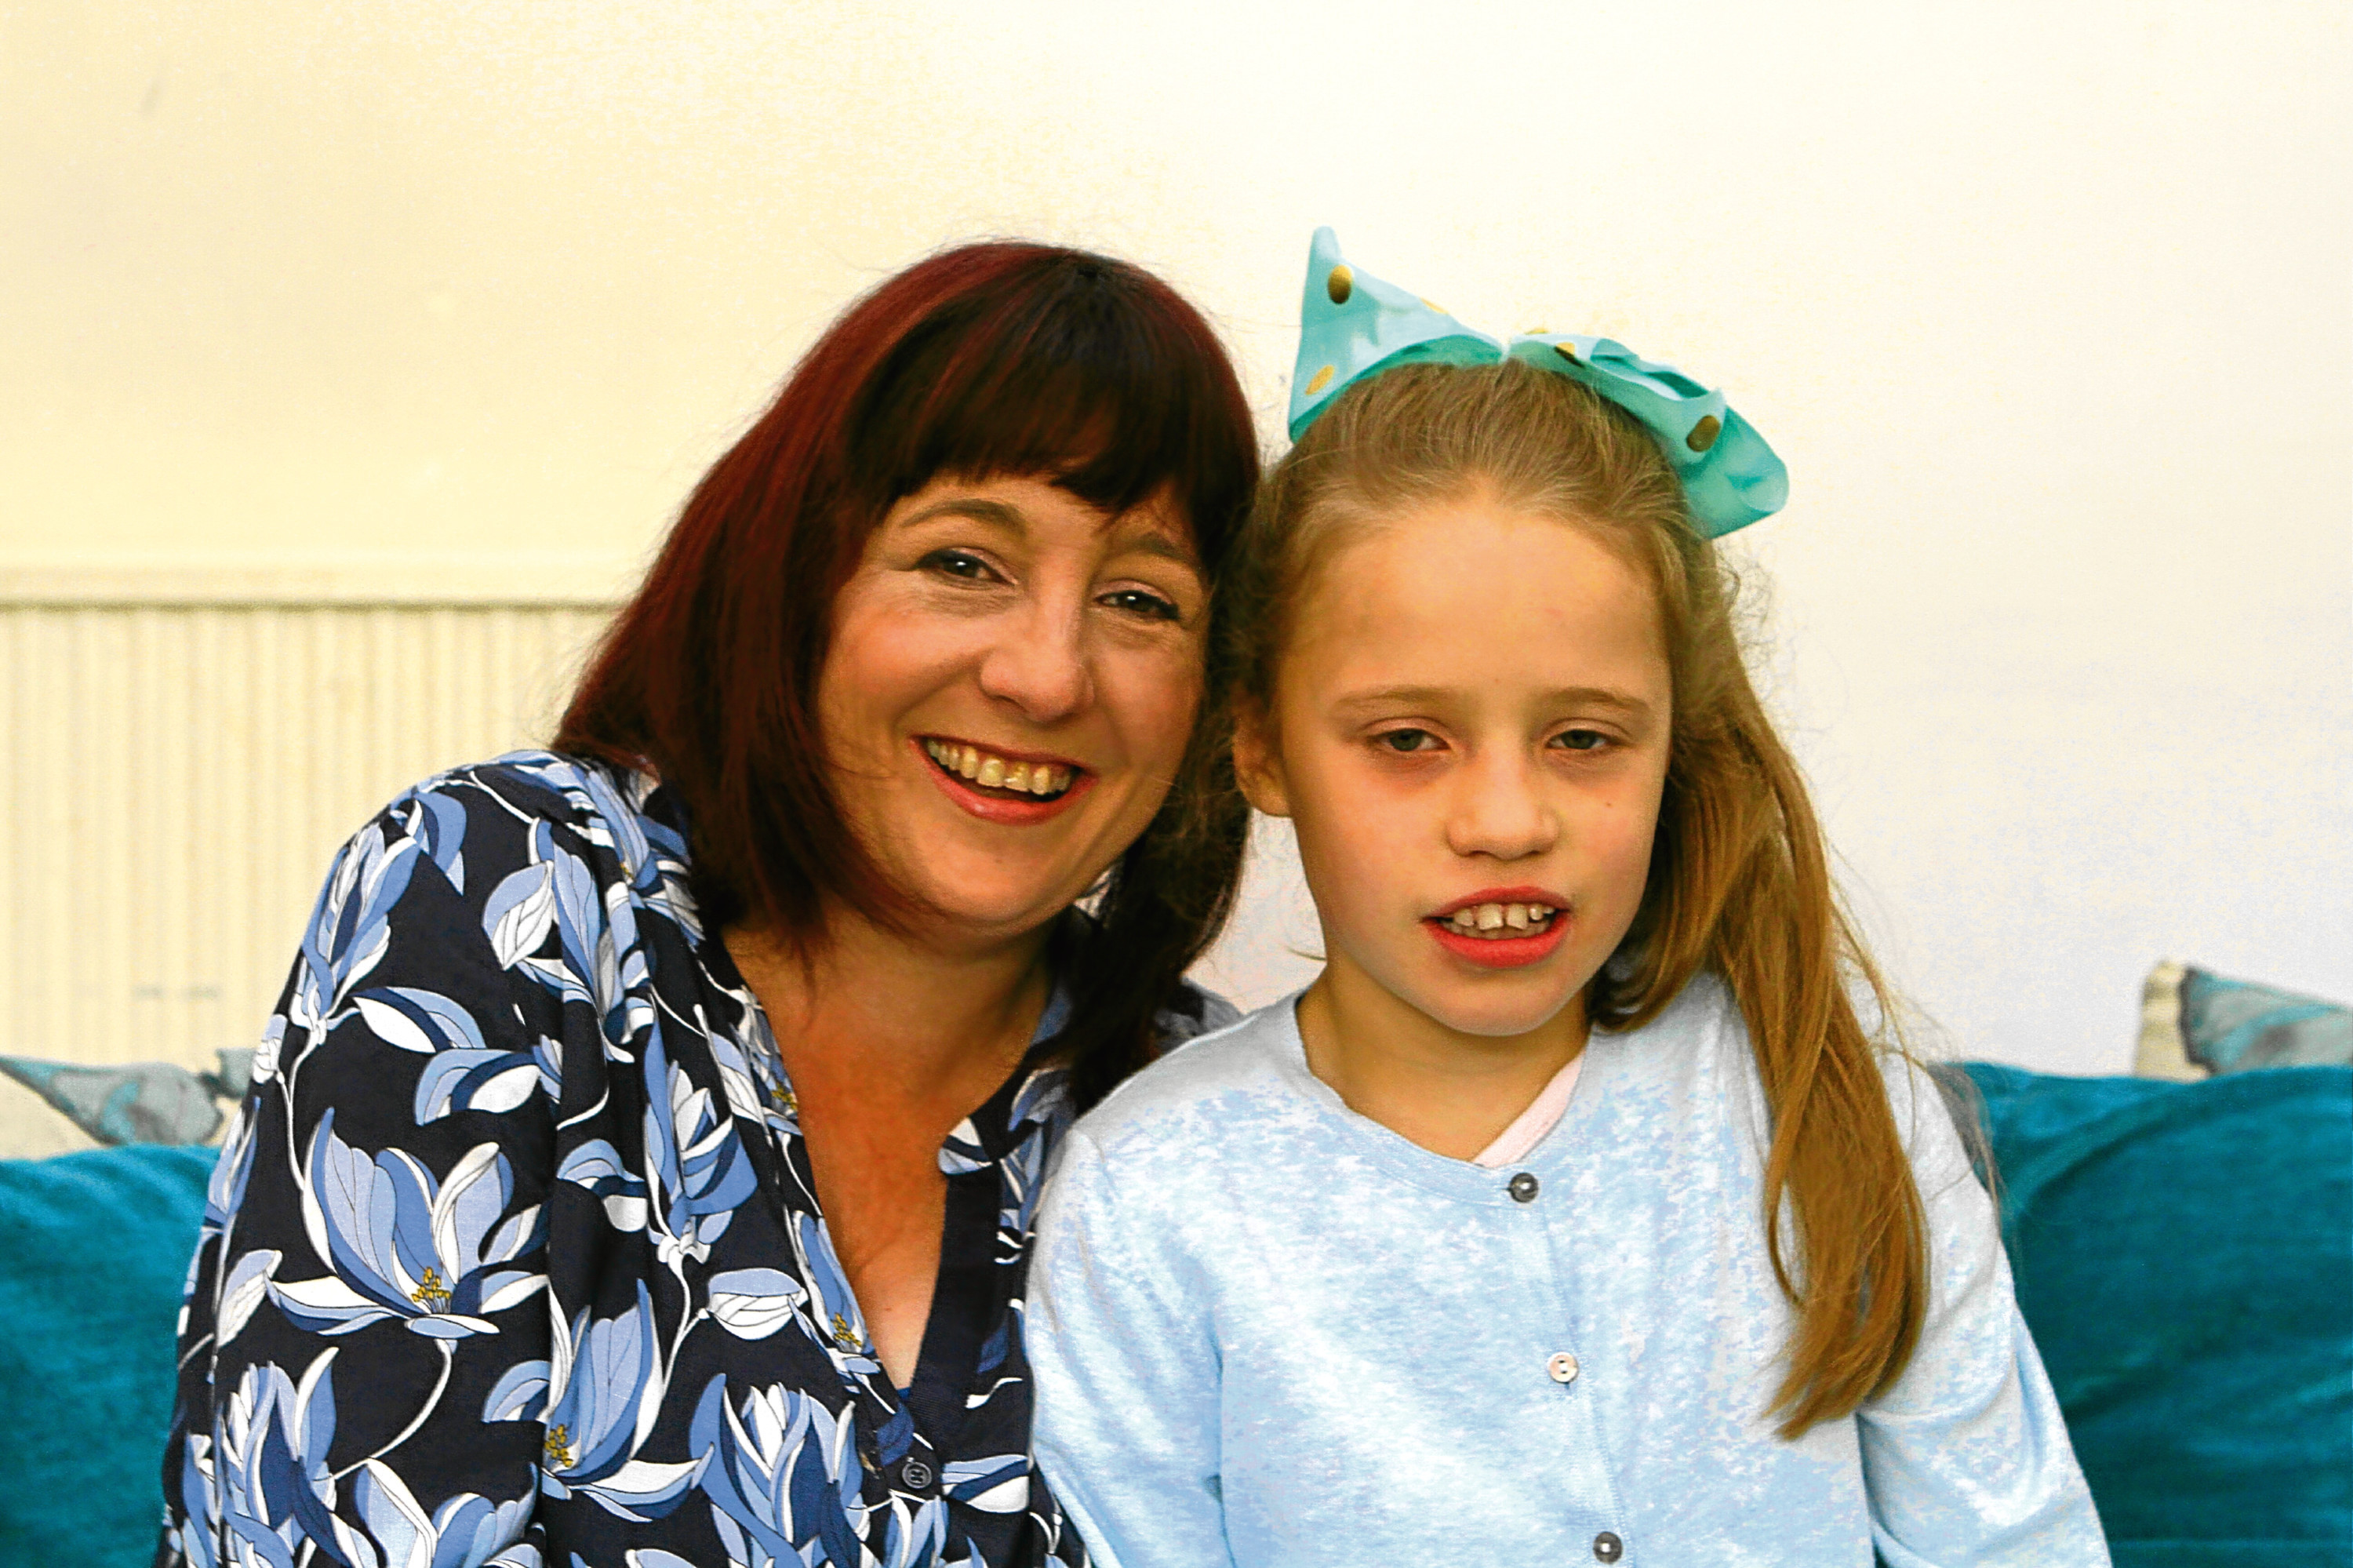 Mum Shona Thomson at home in Broughty Ferry with daughter Emily Gray